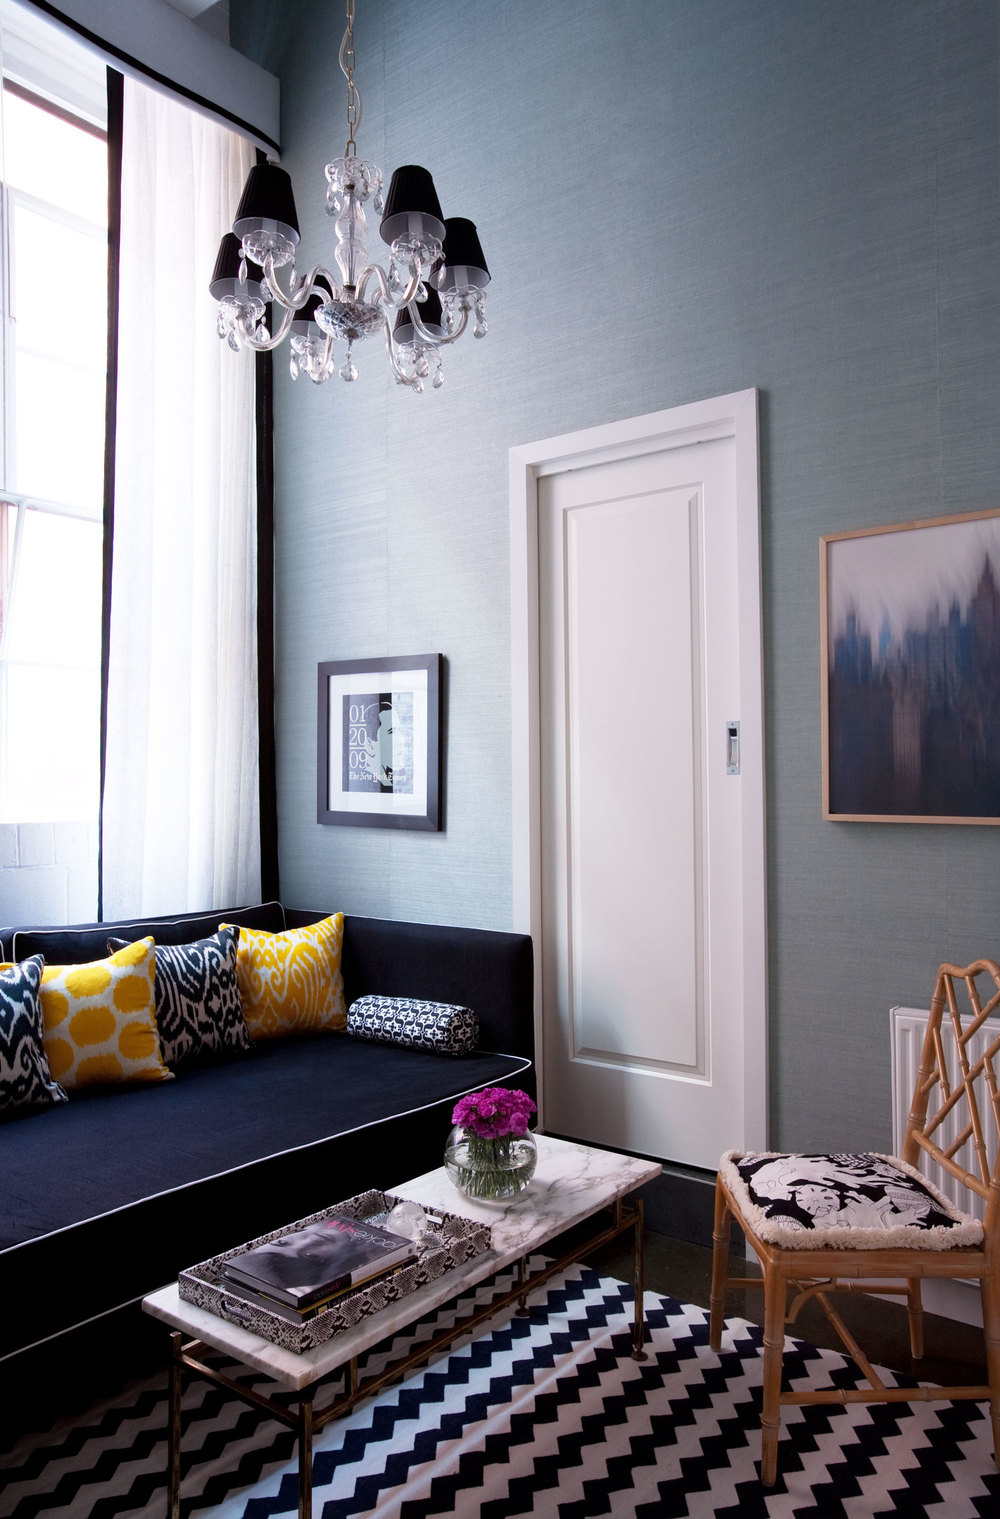 nook-living-room-navy-daybed-faux-bamboo-occasional-chair-yellow-and-blue-print-cushions-light-teal-grasscloth-wallpaper-black-white-window-dressing-zigzag-rug-diane-bergeron.jpg